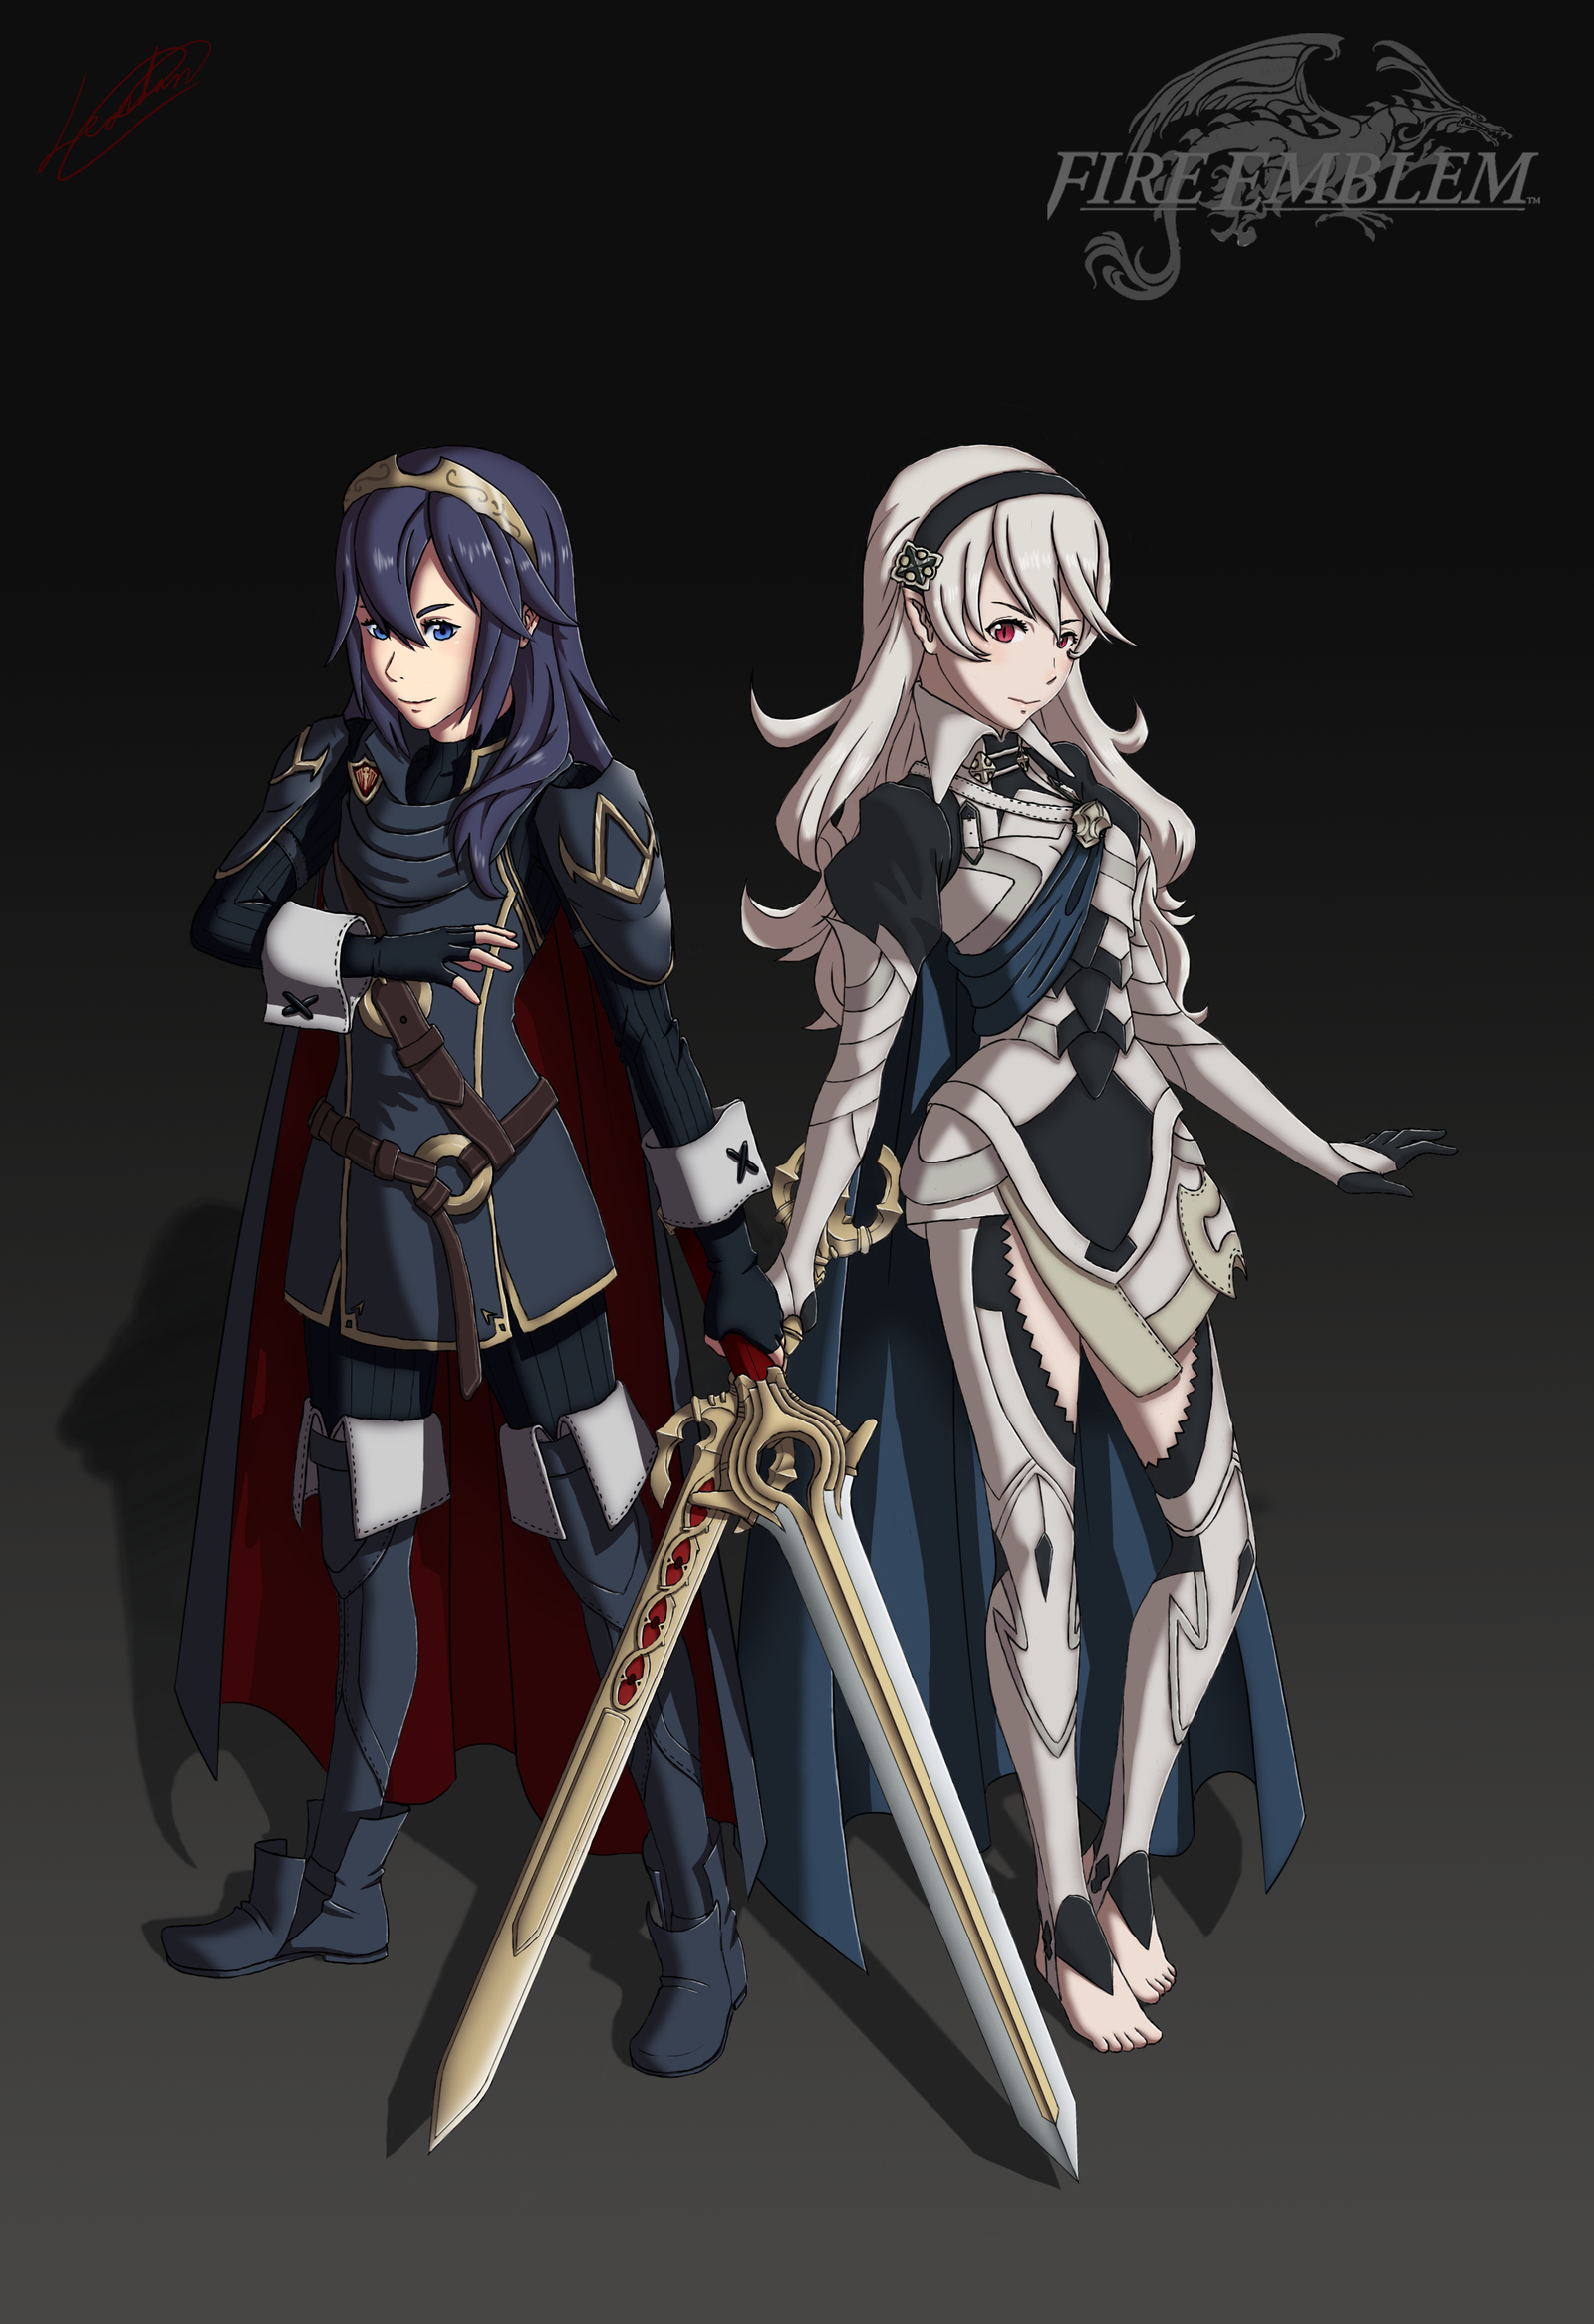 https://img00.deviantart.net/aee7/i/2017/070/4/9/fire_emblem___lucina_and_corrin_by_leordan-db1z6xy.png